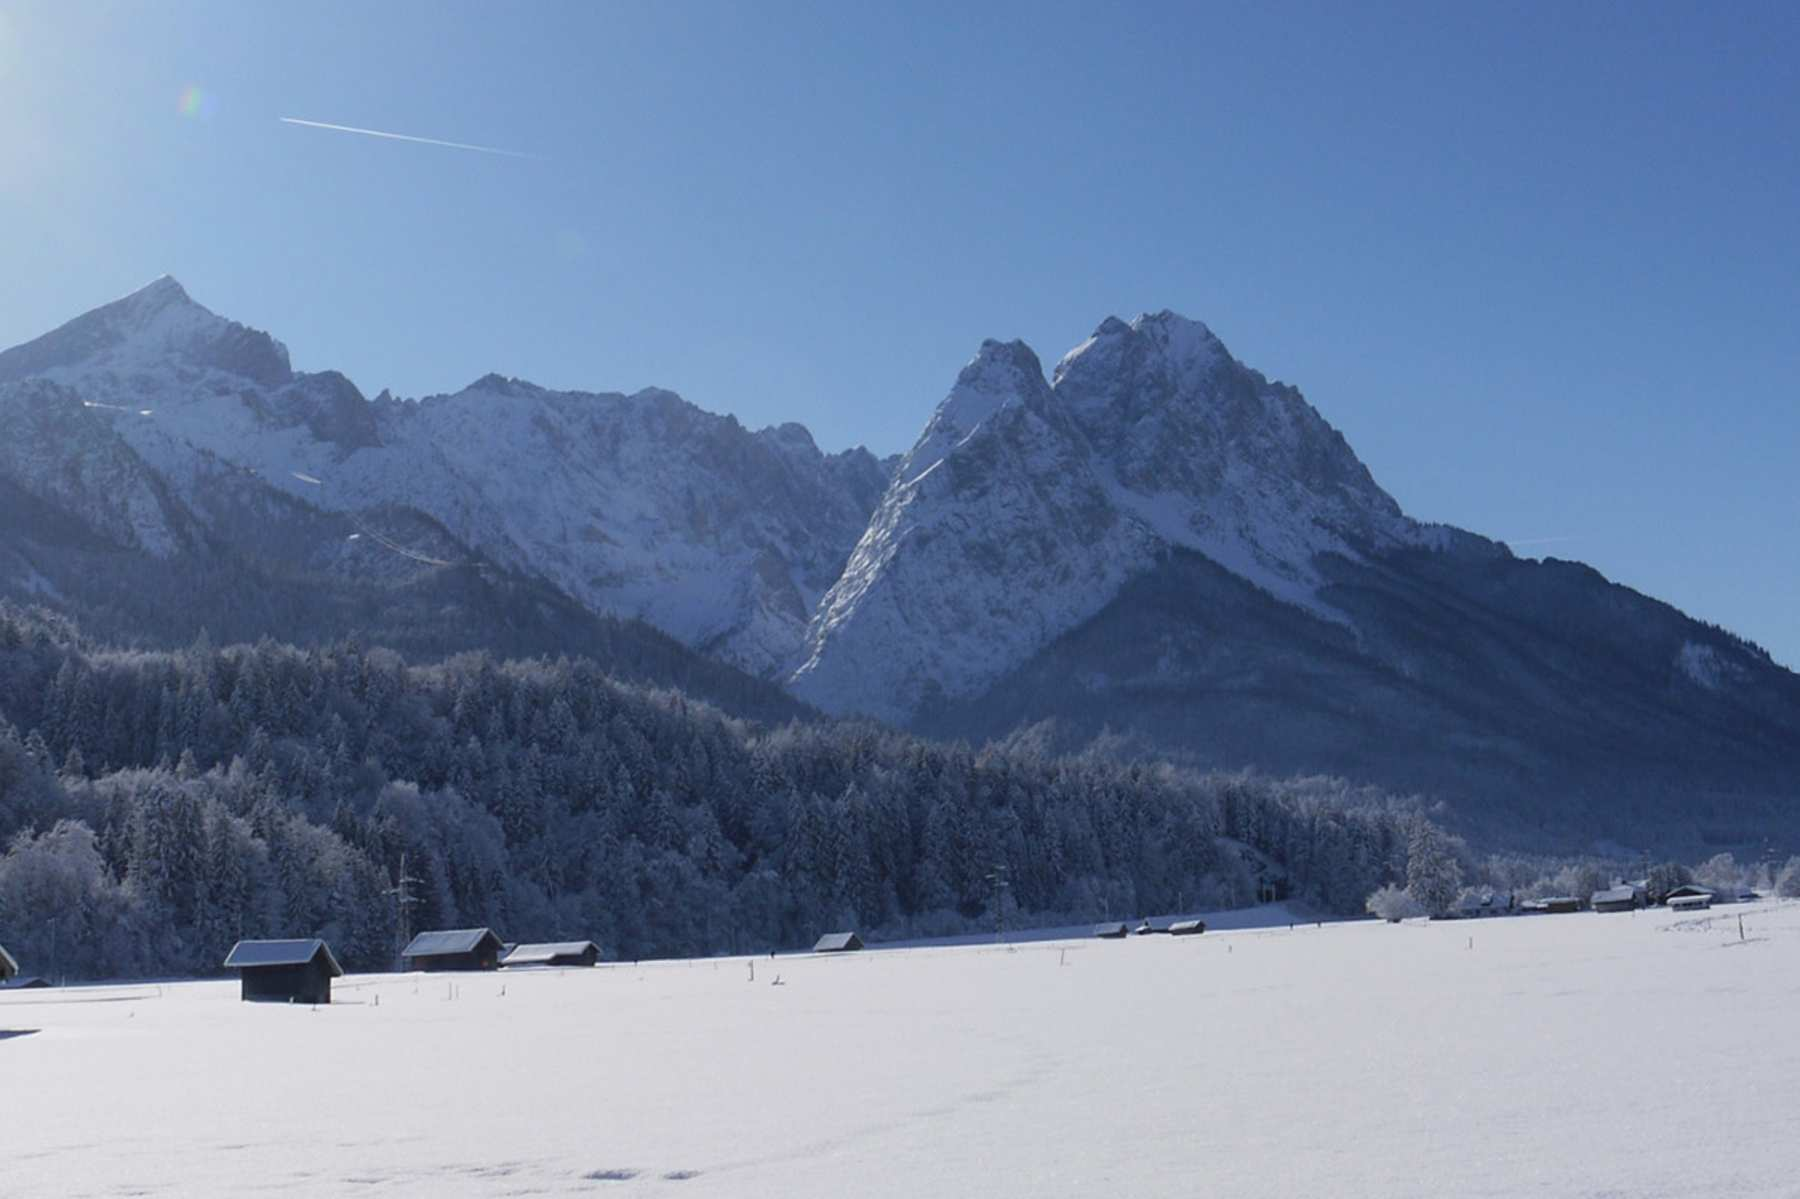 Winterurlaub in Garmisch-Partenkirchen